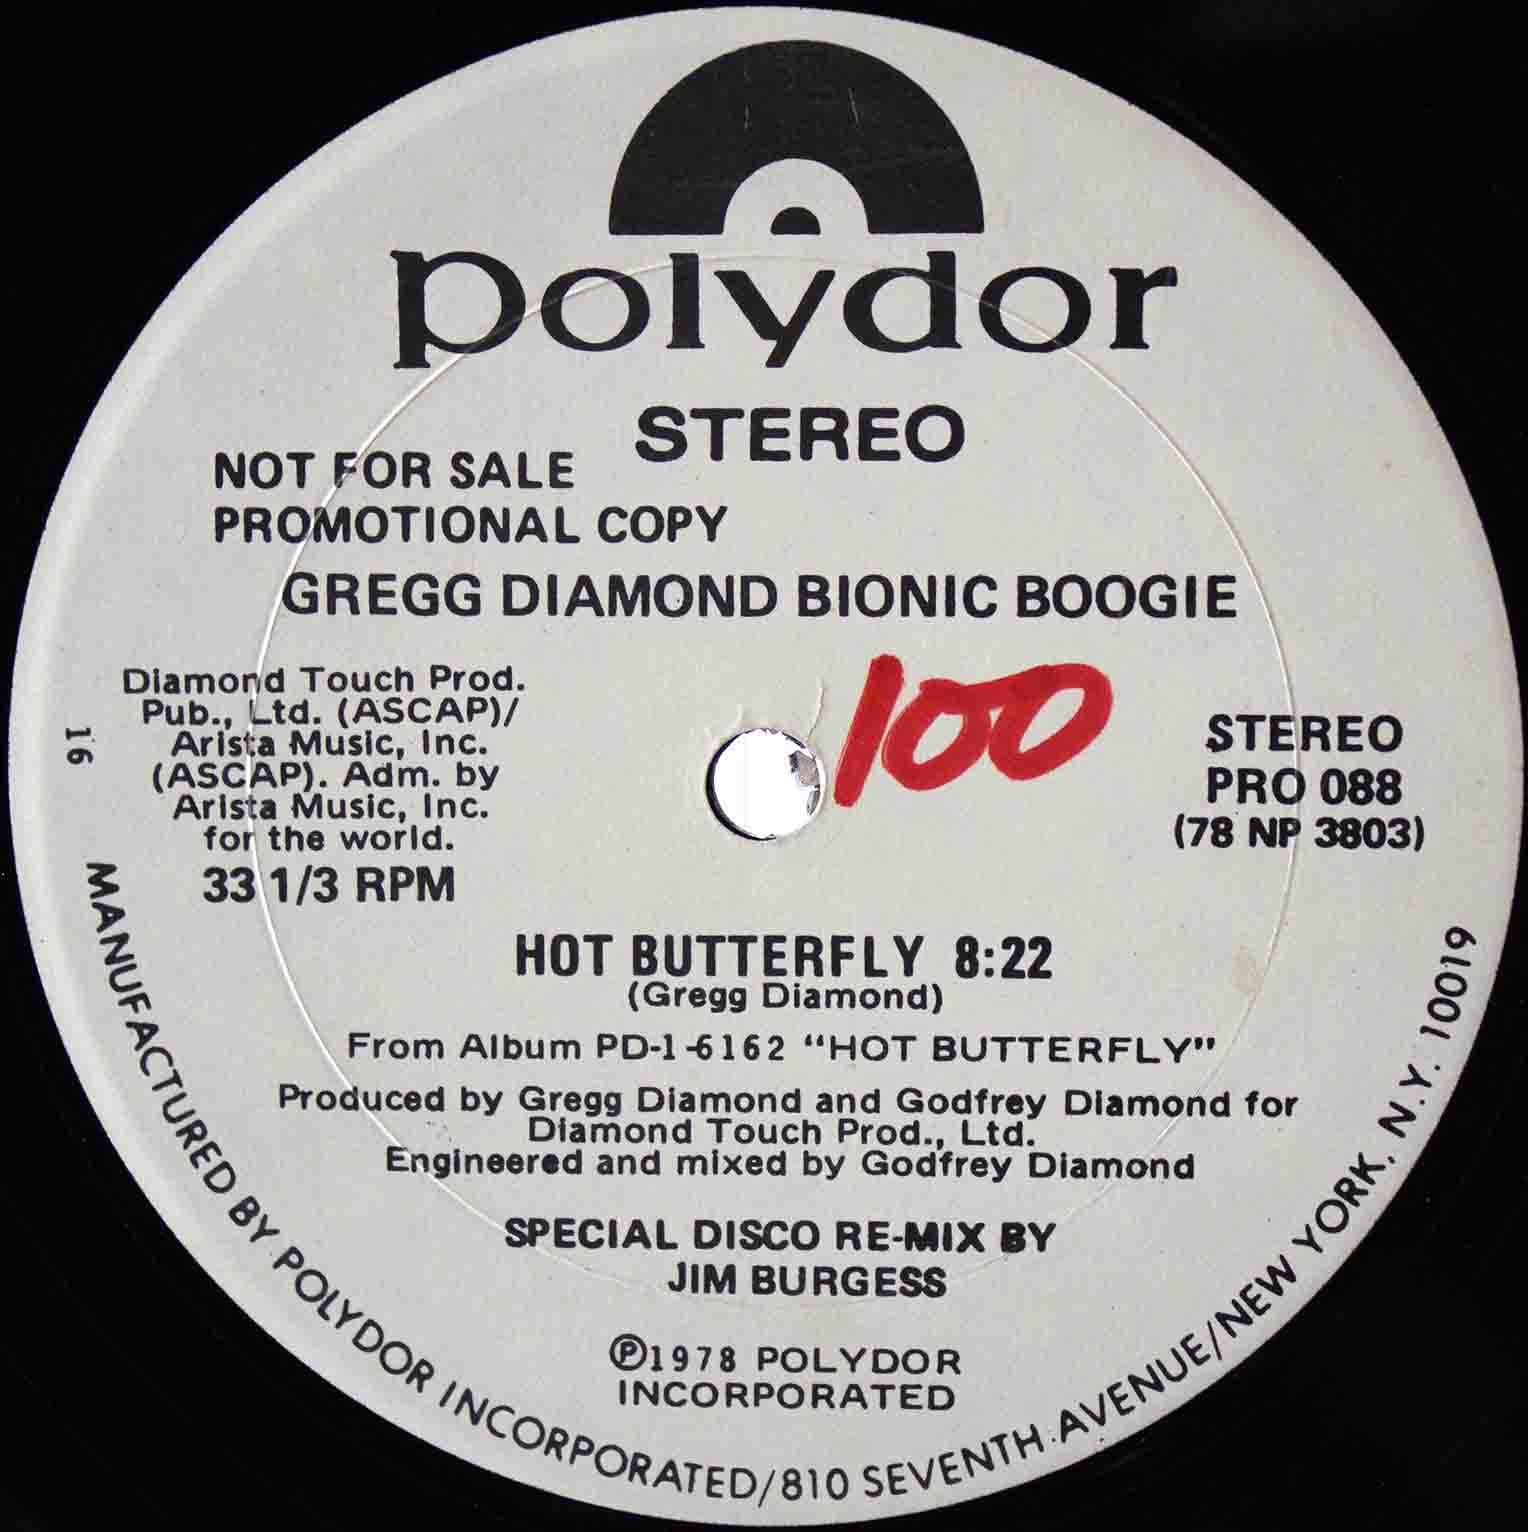 Gregg Diamond Bionic Boogie - Hot Butterfly 03